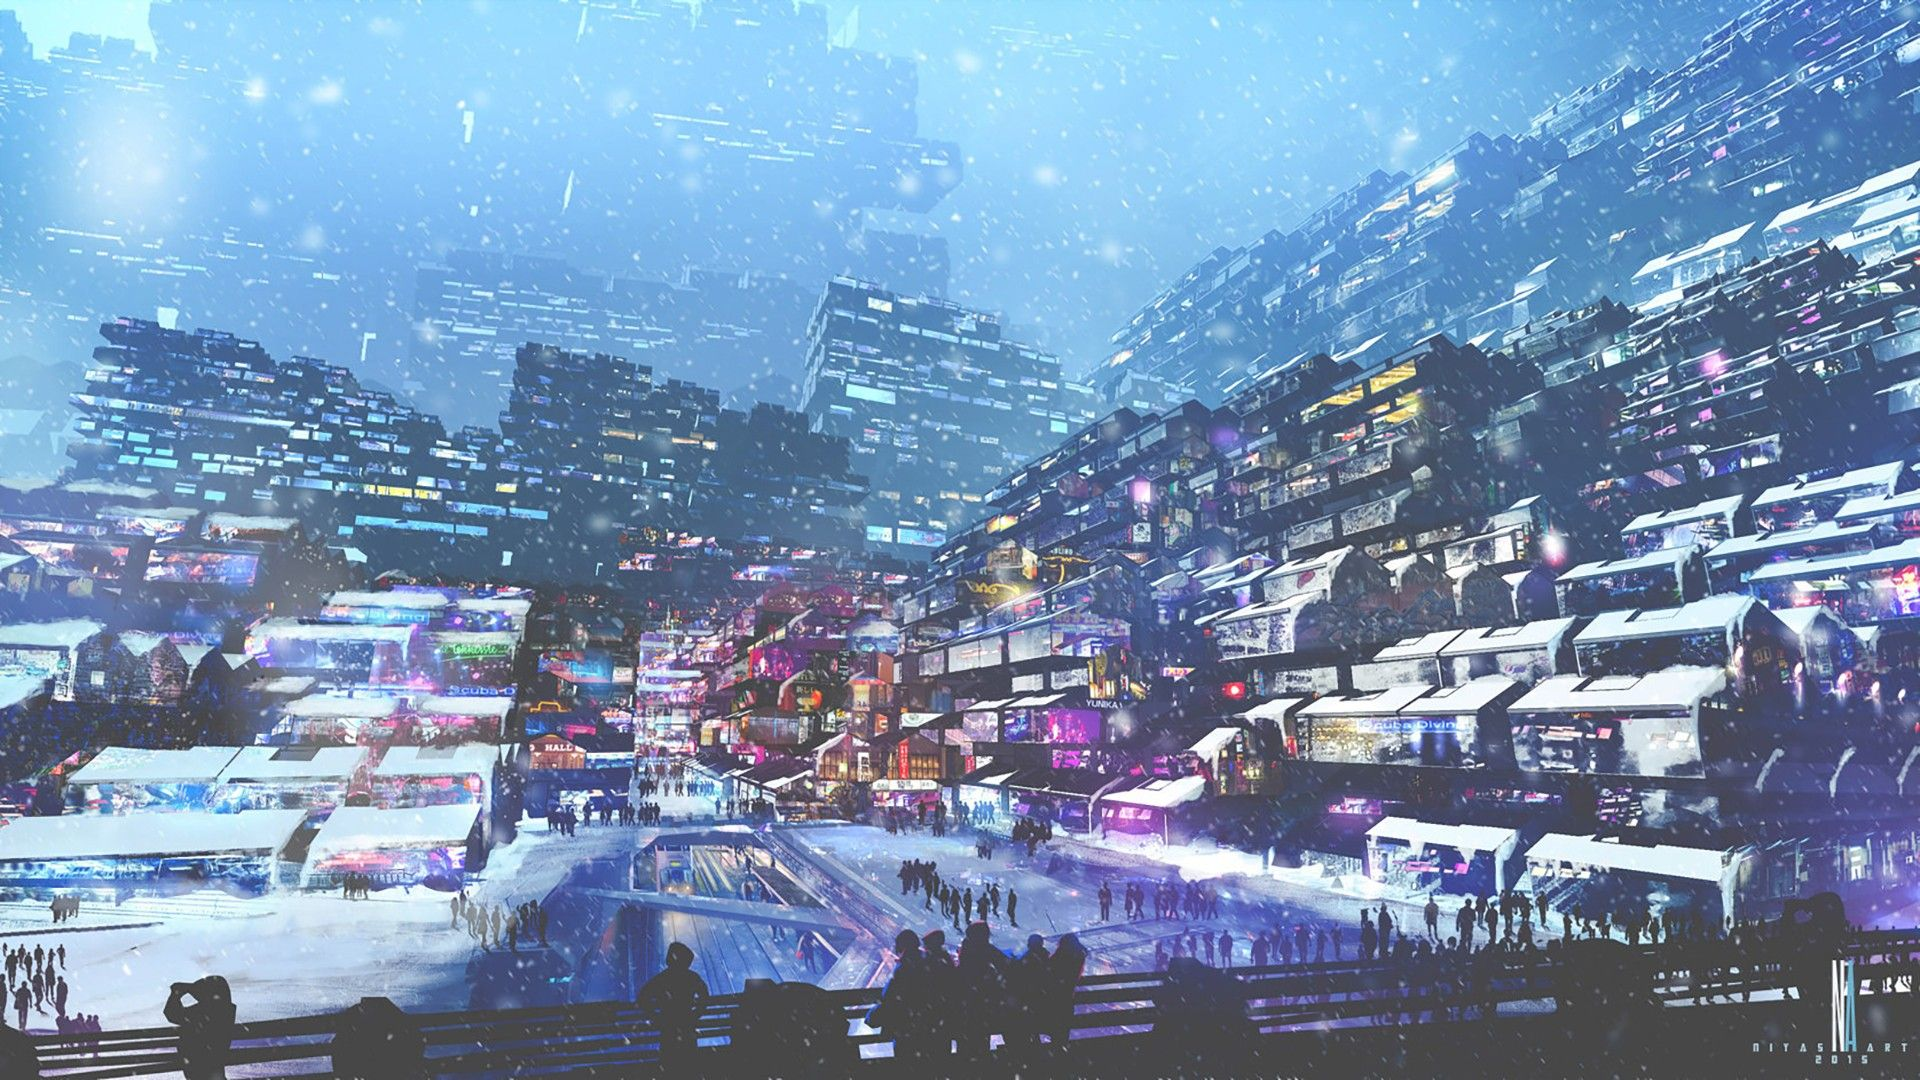 General 1920x1080 artwork digital art city futuristic cyberpunk snow general 1920x1080 artwork digital art city futuristic cyberpunk snow lights voltagebd